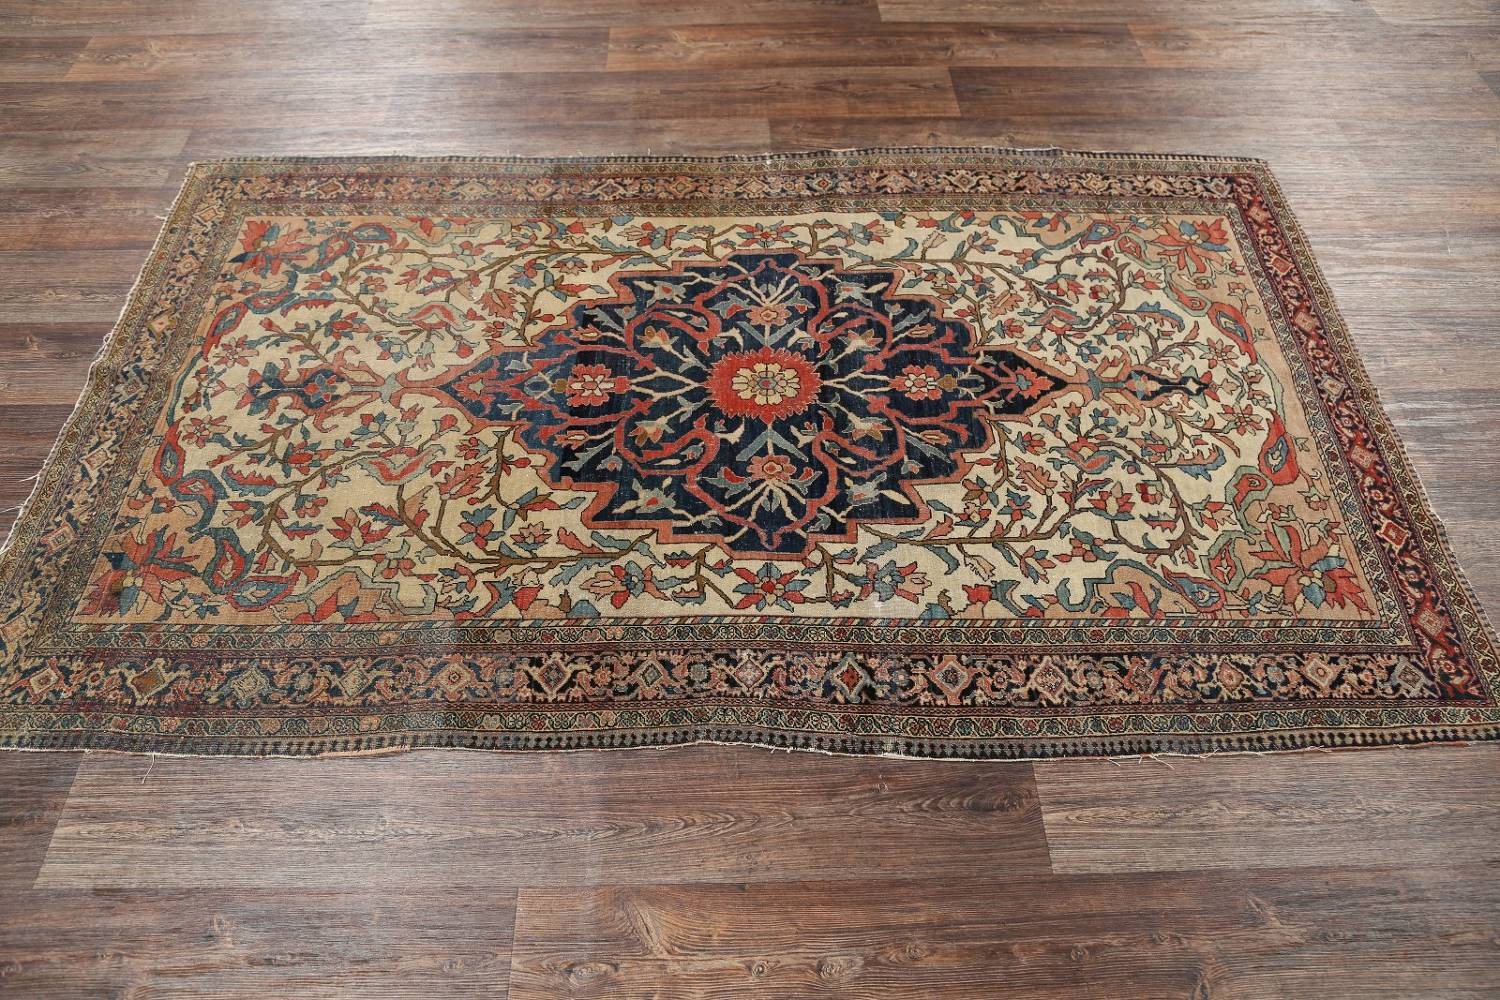 Pre-1900 Antique Floral Sarouk Farahan Persian Hand-Knotted 4'x7' Wool Area Rug image 12